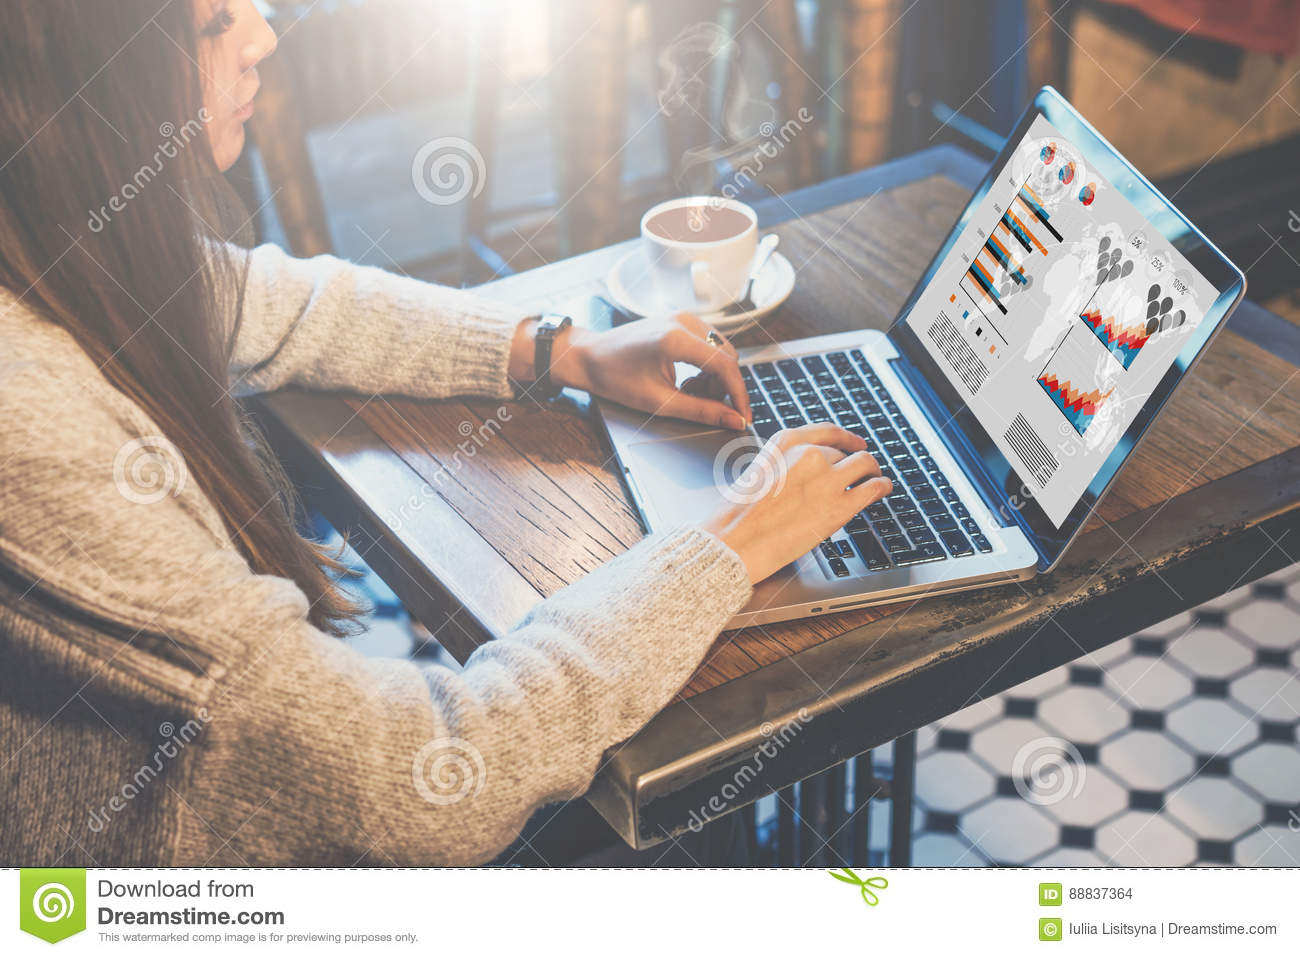 Graphics and diagrams on computer screen. Woman analyzing data. Student learning online. Freelancer working home